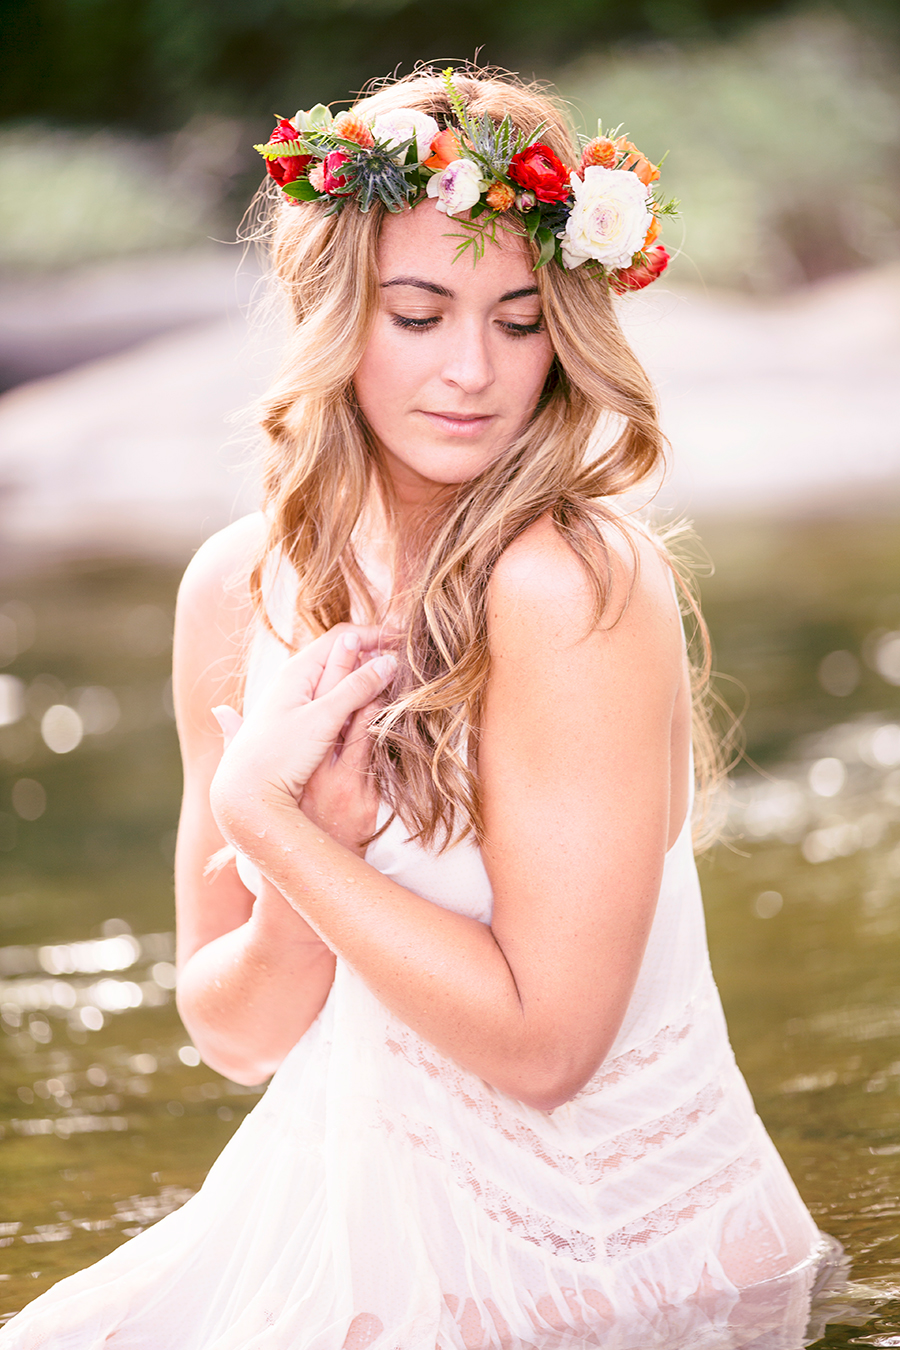 Flower Crown Boudoir Photo Shoot On The River  - Image Property of www.j-dphoto.com